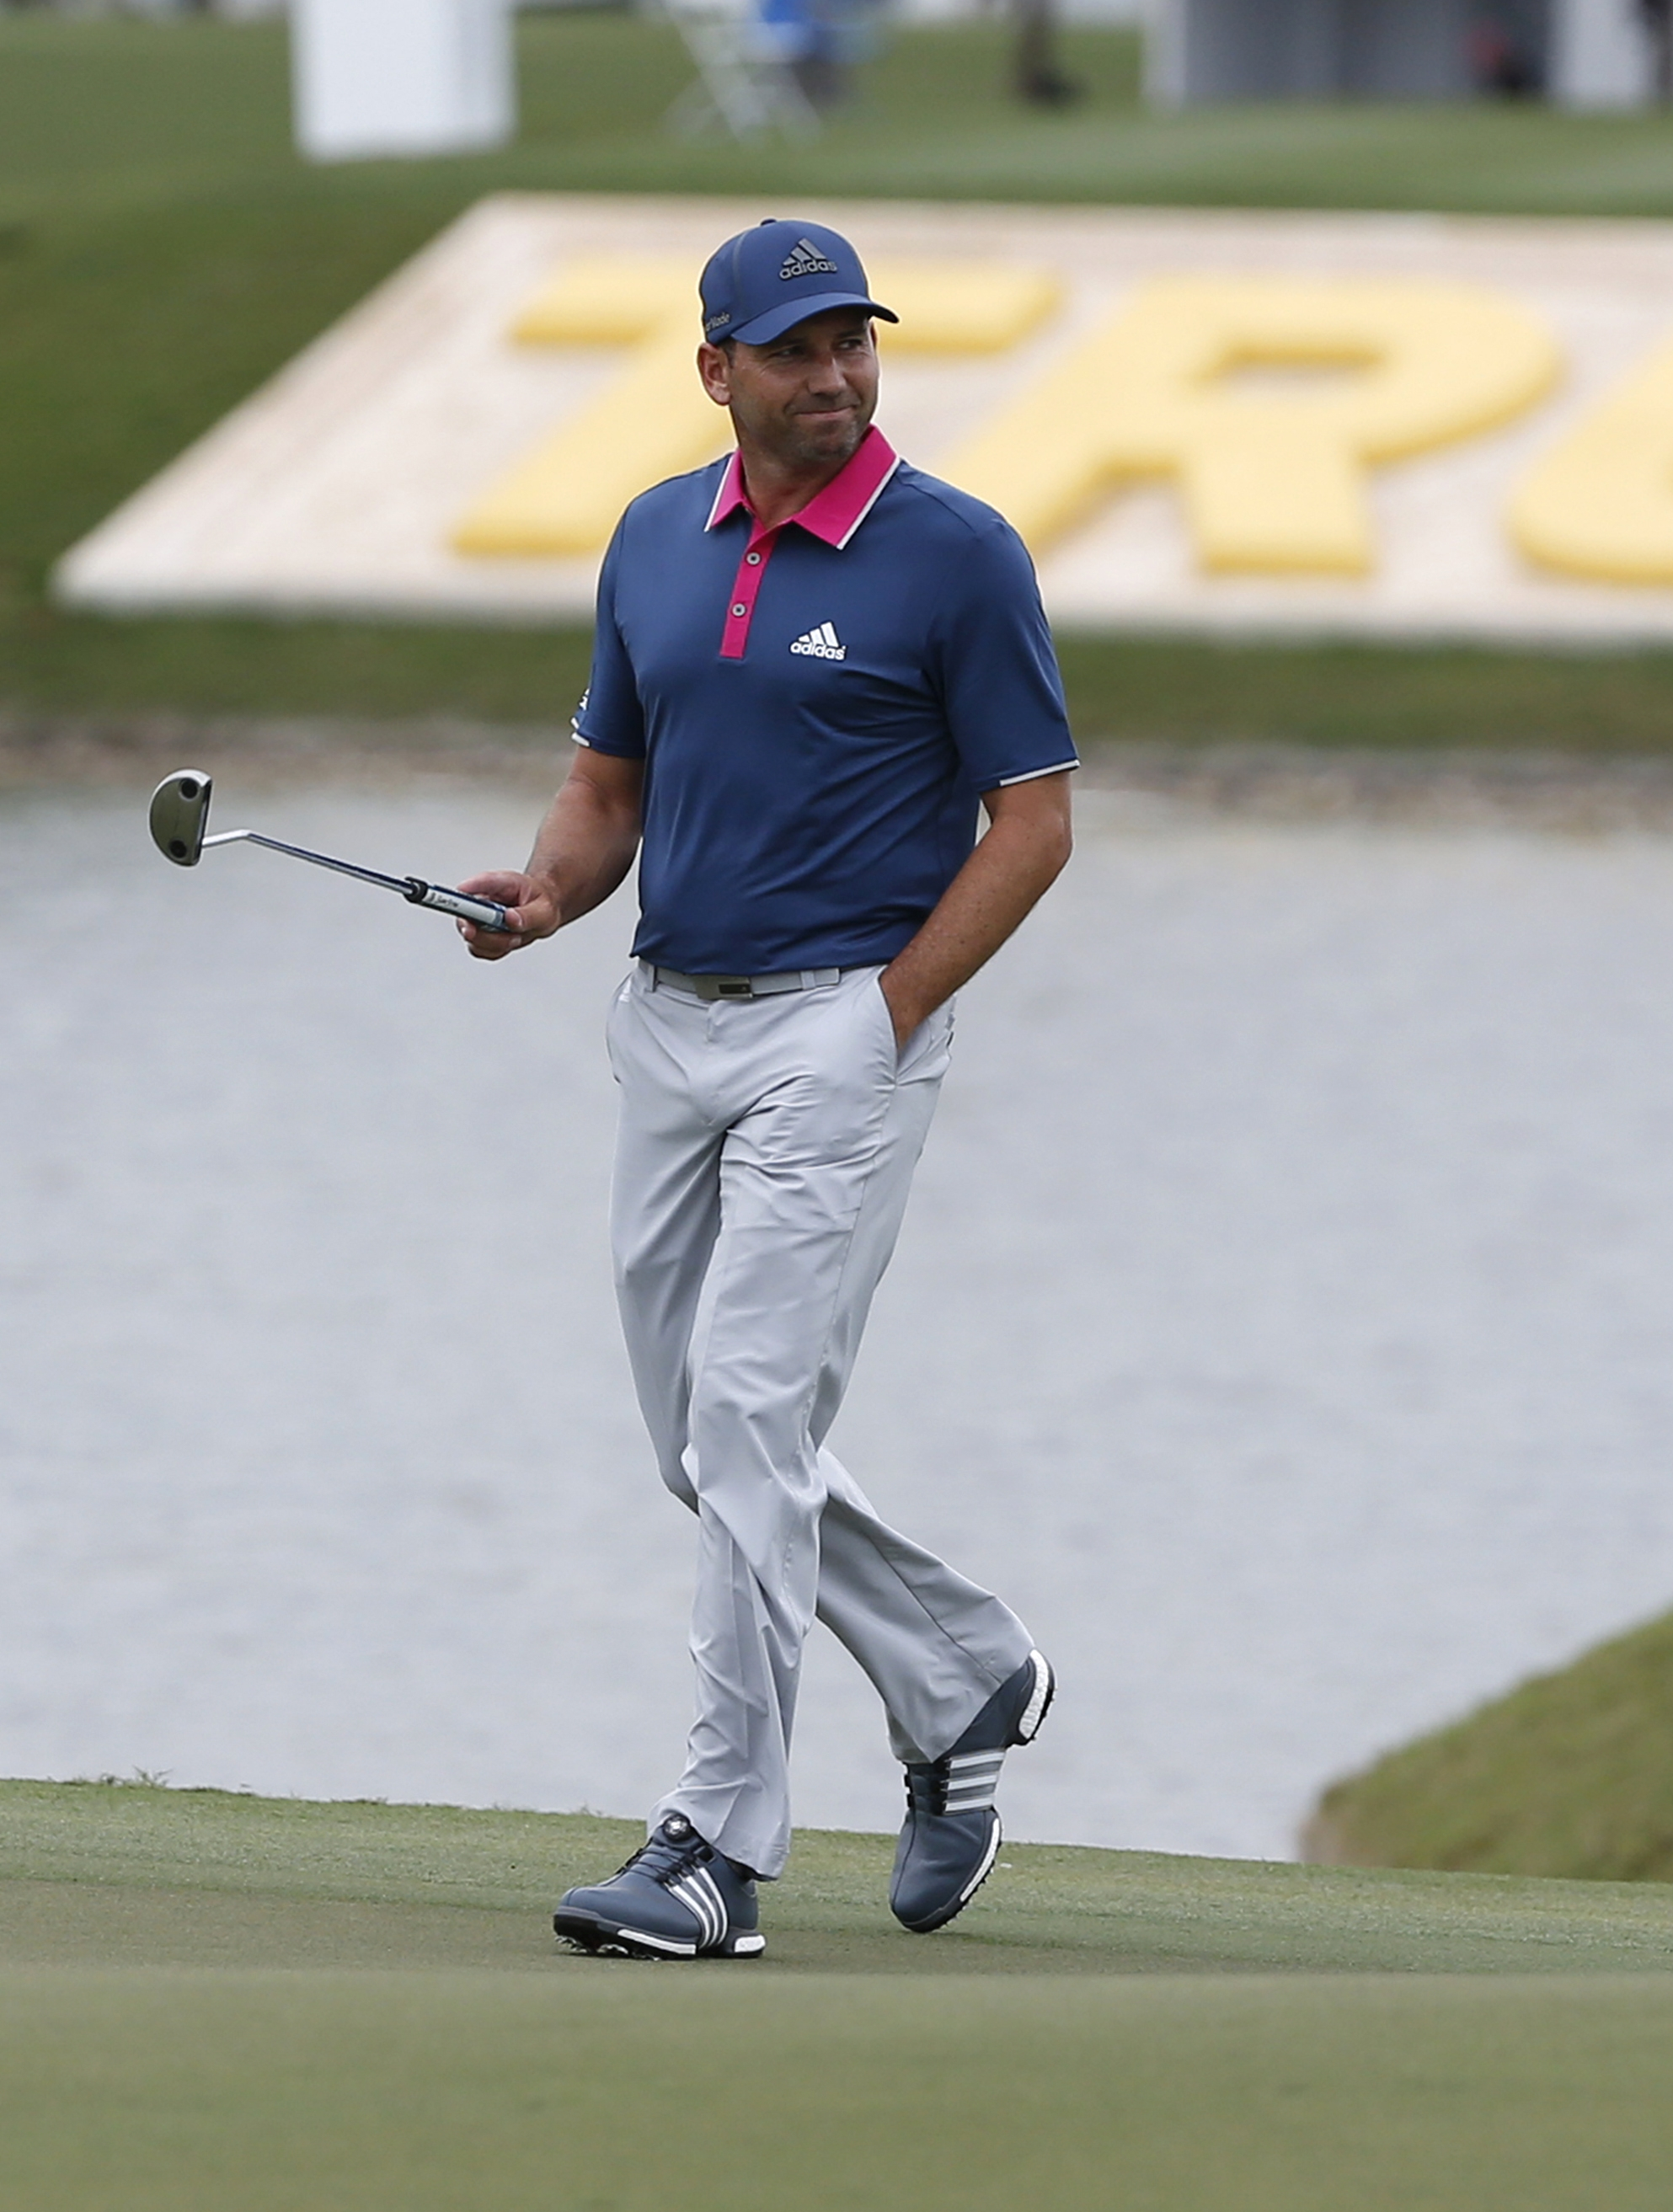 Sergio Garcia, of Spain, acknowledges the cheers from the crowd as he walks onto the ninth green during the first round of the Cadillac Championship golf tournament, Thursday, March 3, 2016, in Doral, Fla. (AP Photo/Wilfredo Lee)